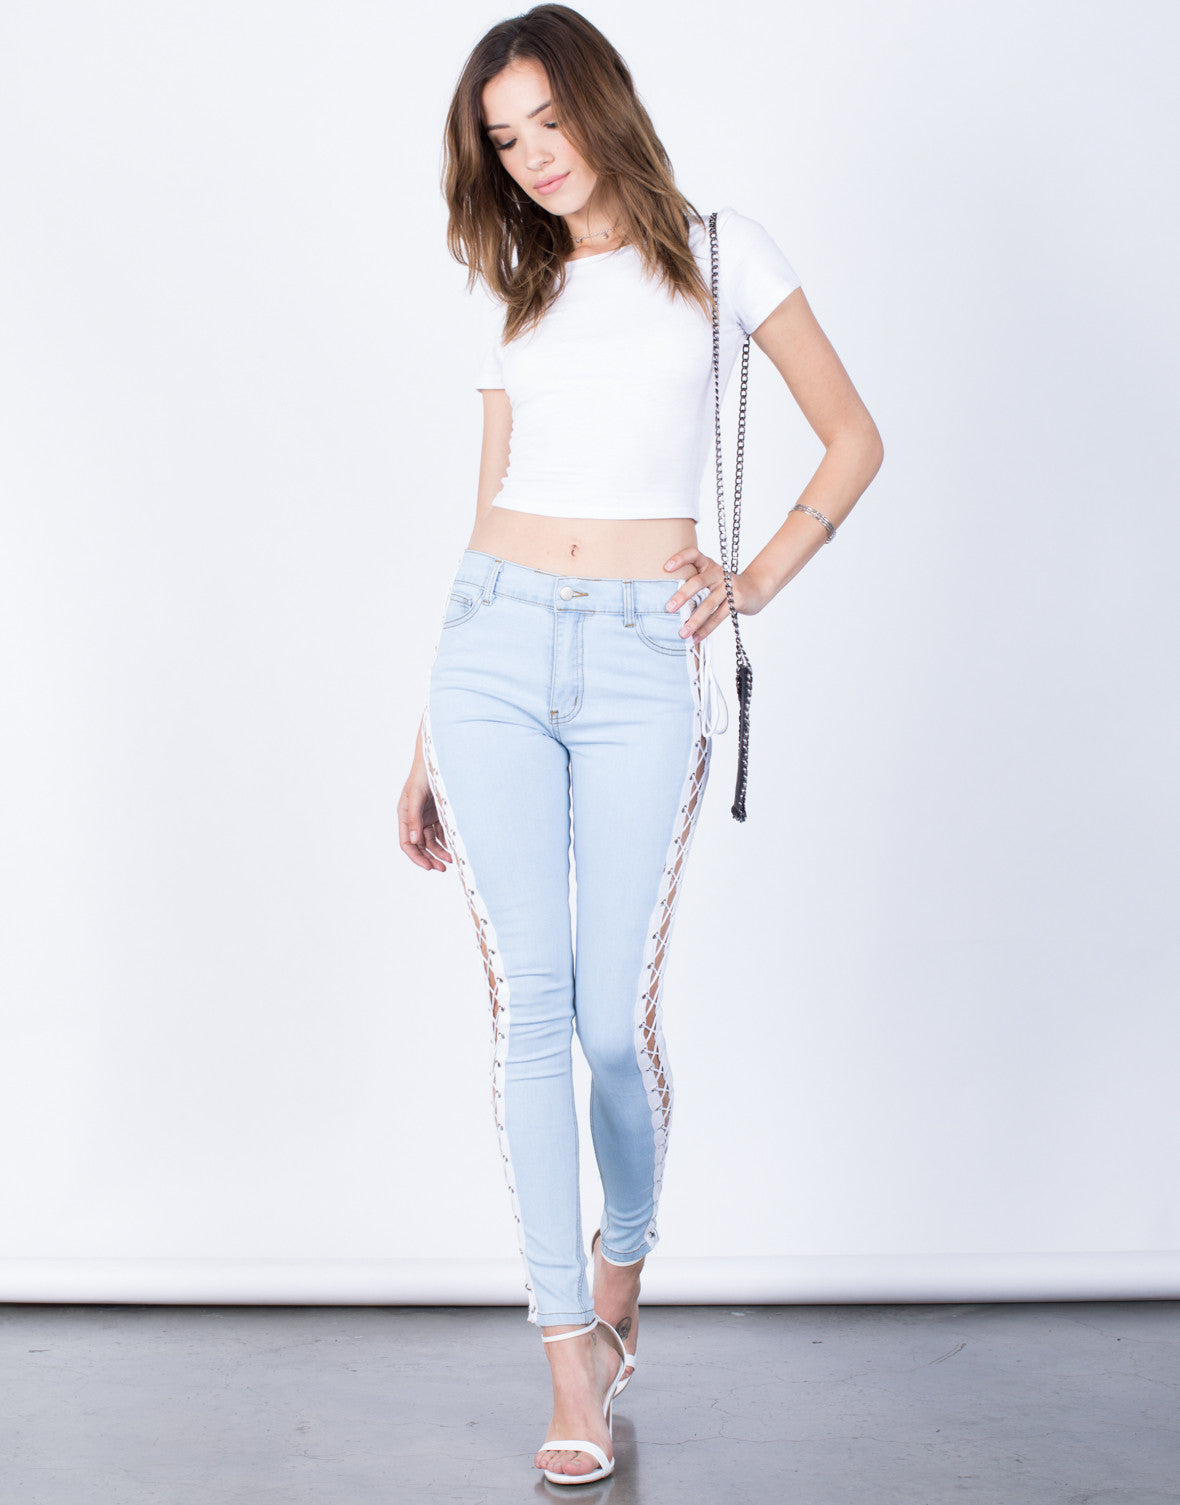 Front View of Tied Together Jeans